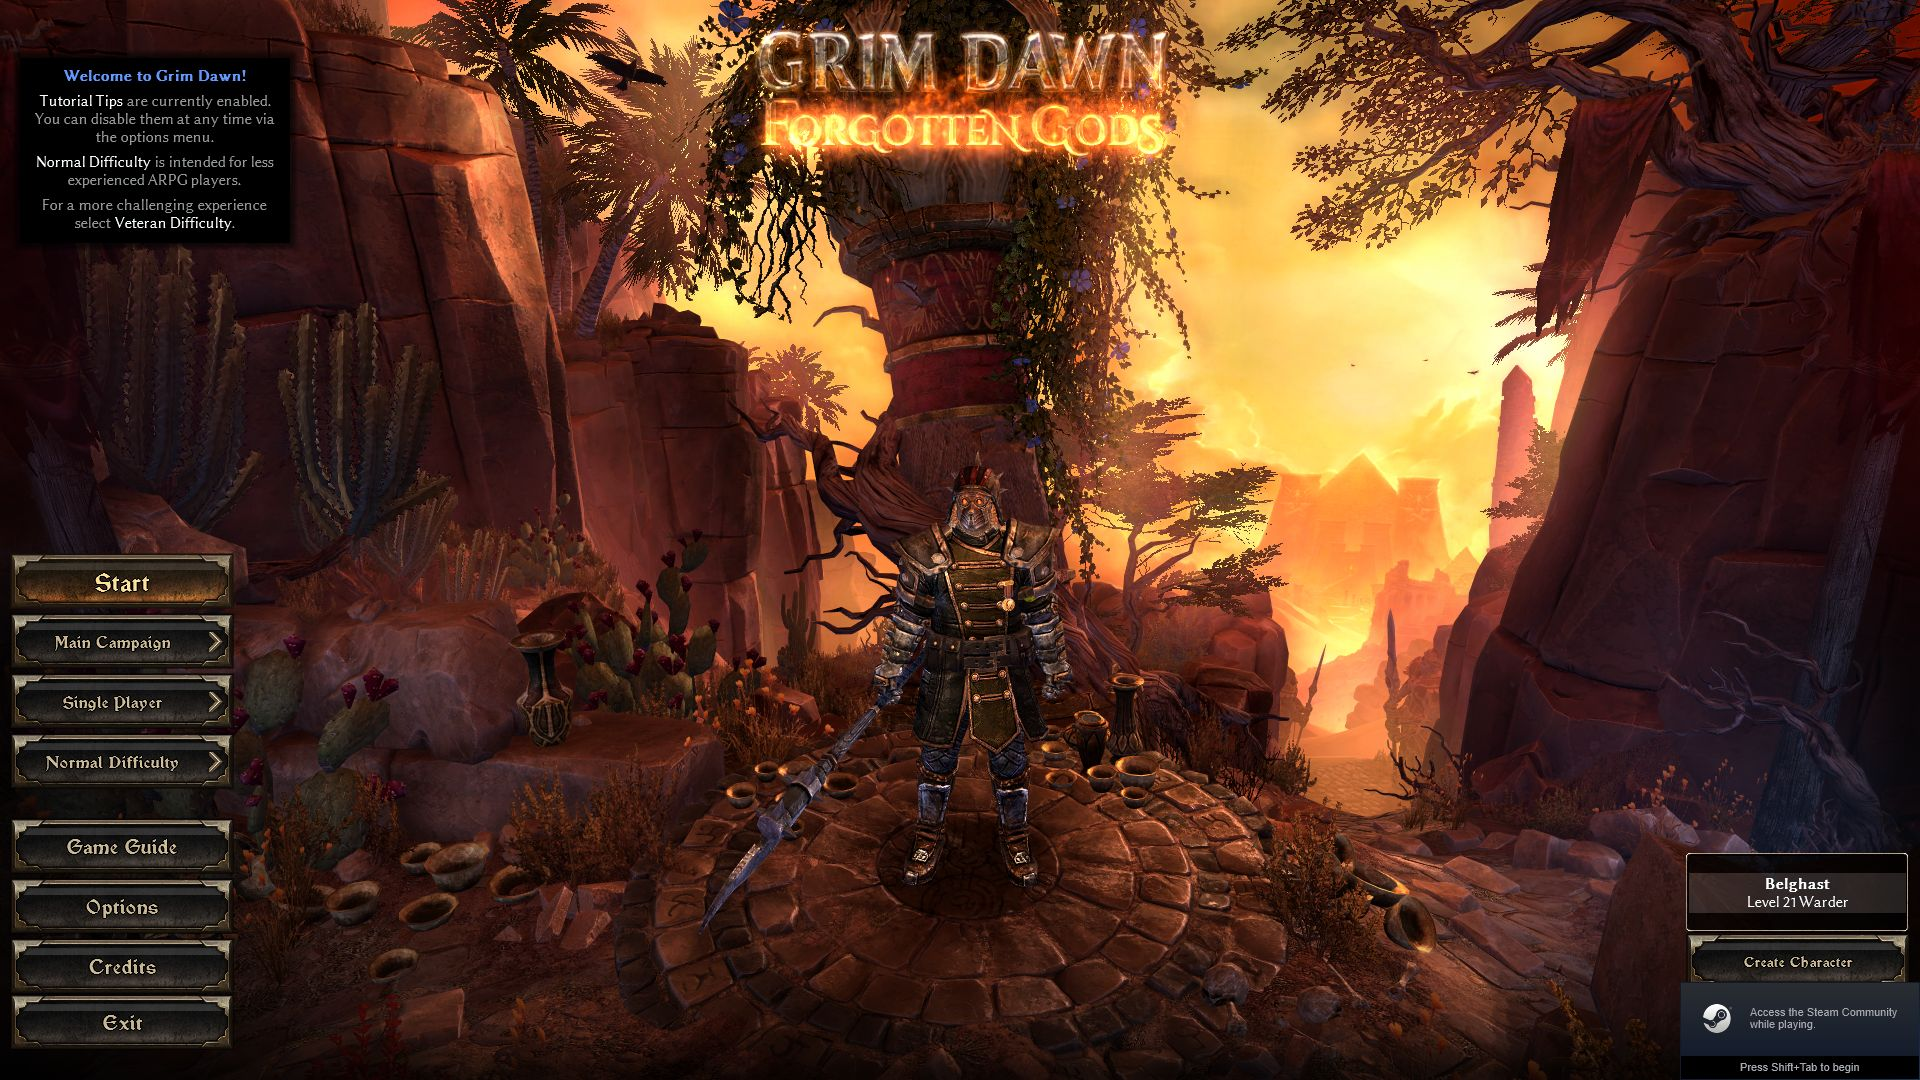 grim-dawn-screenshot-2019-04-10-21-45-20-88